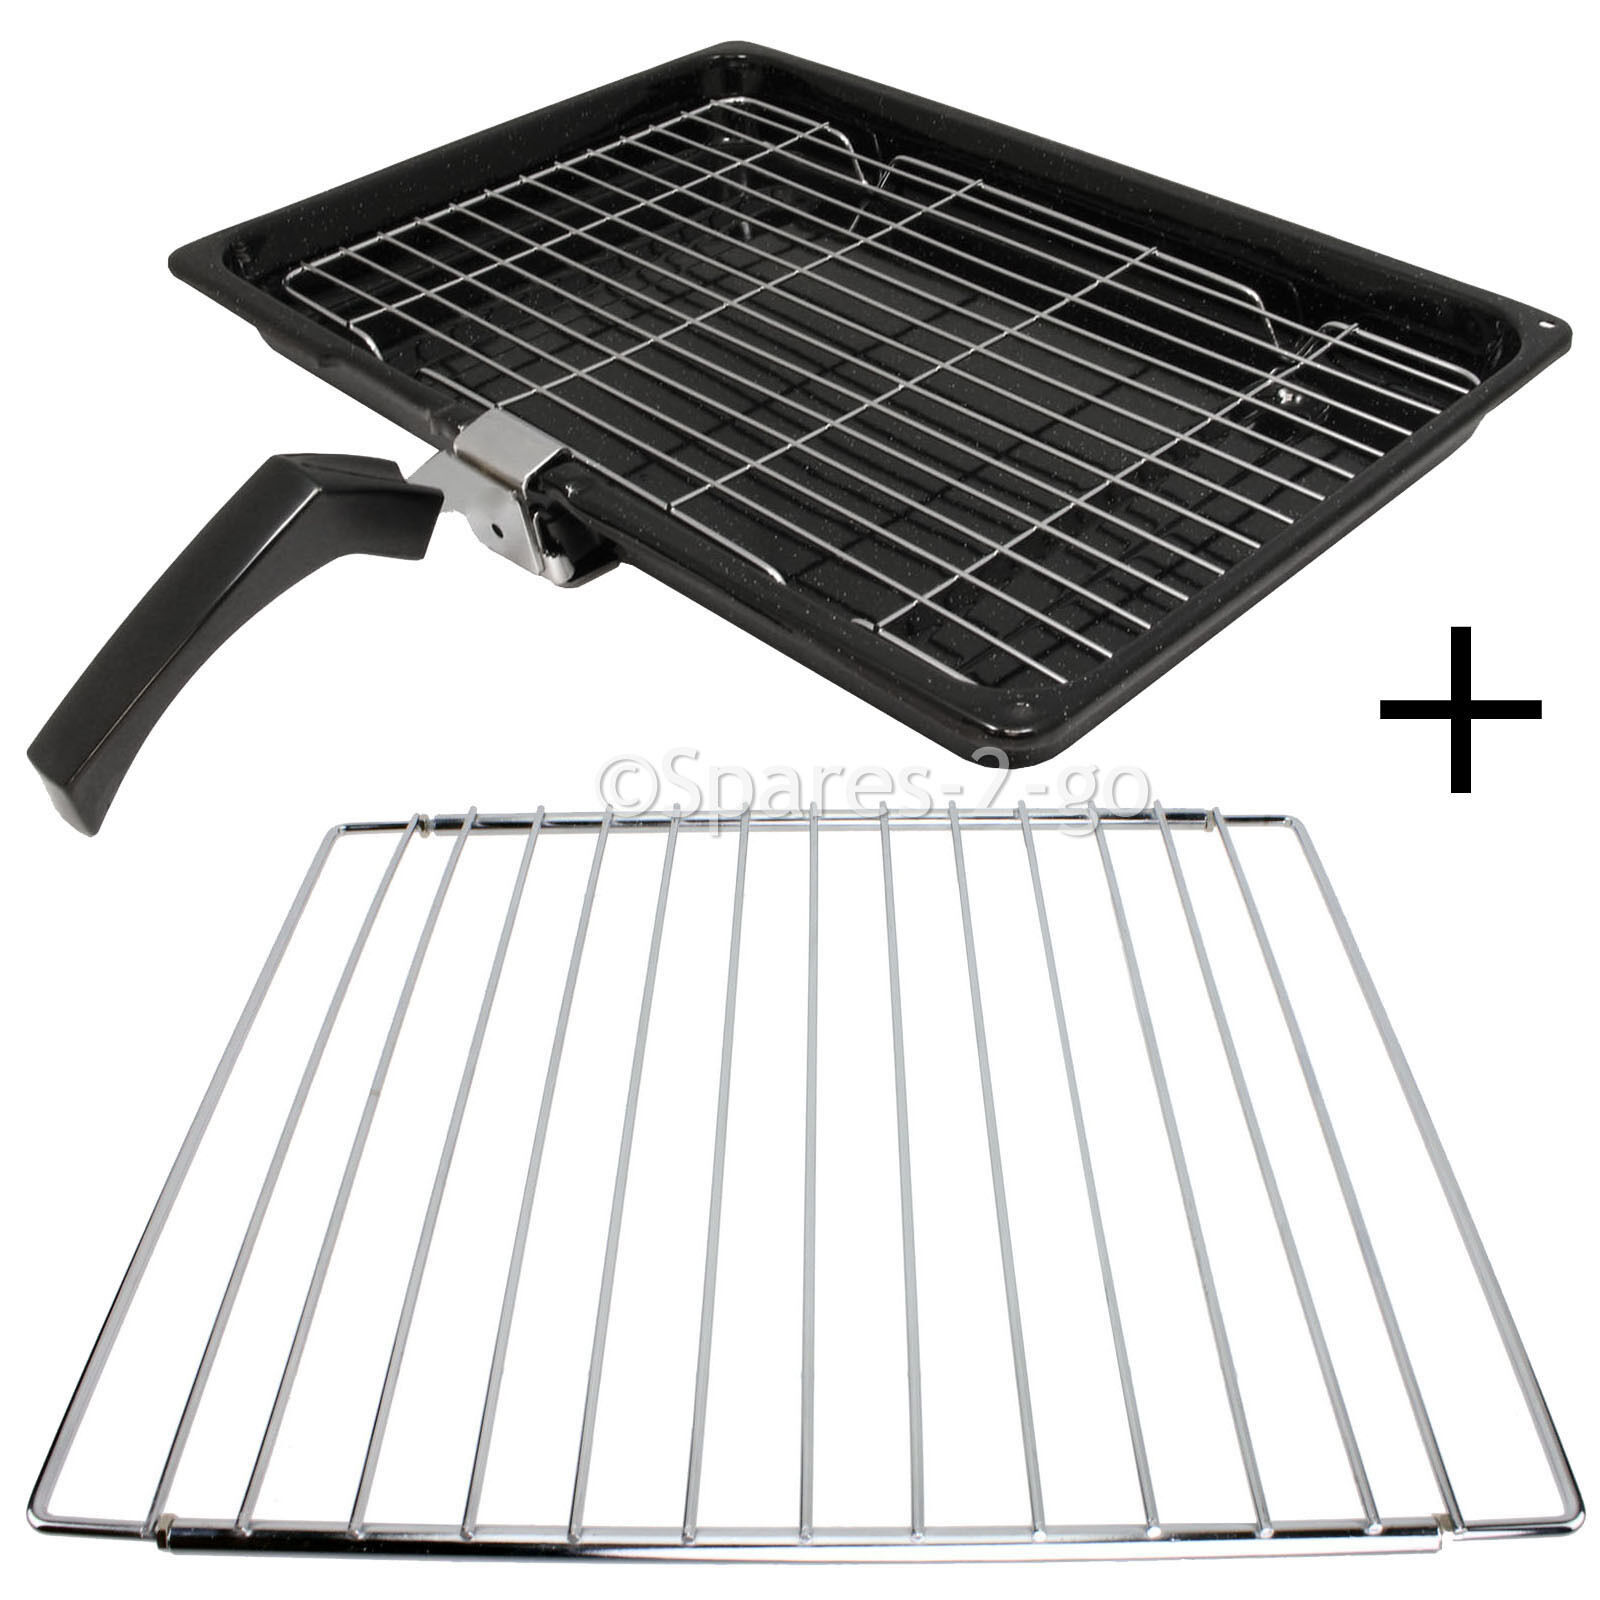 traeger for accessories lil wood series extra shop grills grill fired rack blk tex